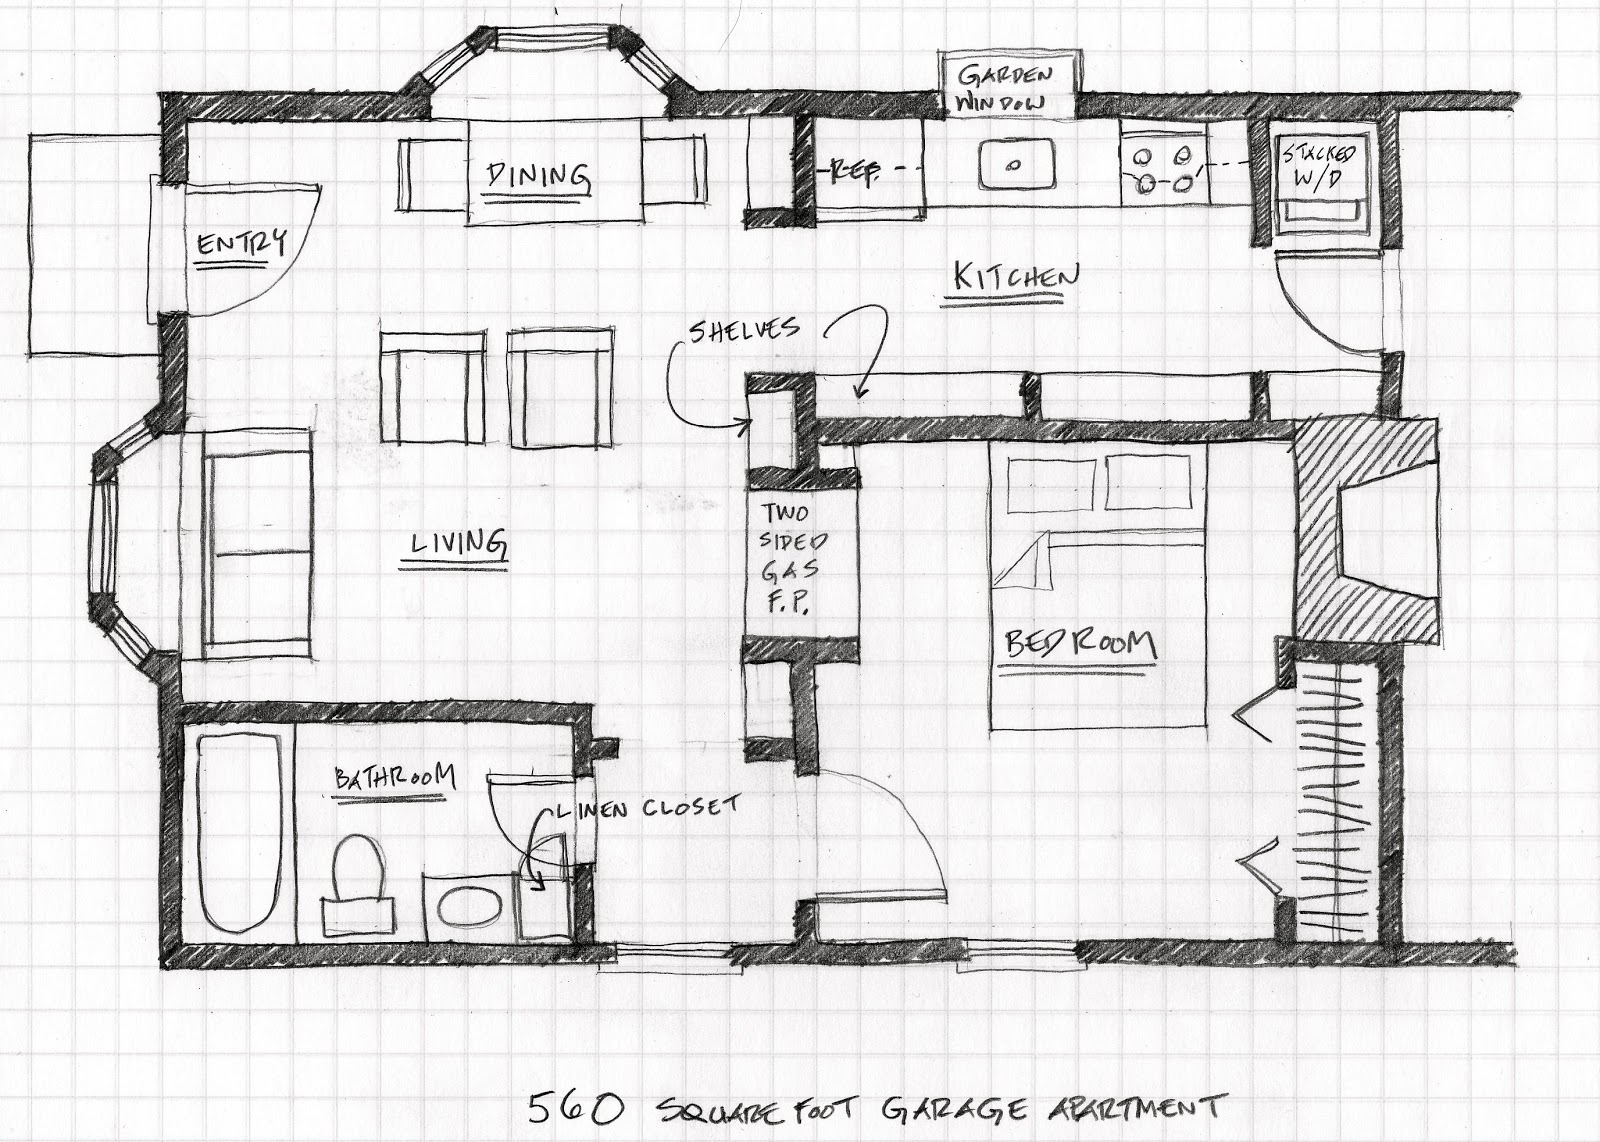 Small Scale Homes: Floor Plans for Garage to Apartment Conversion